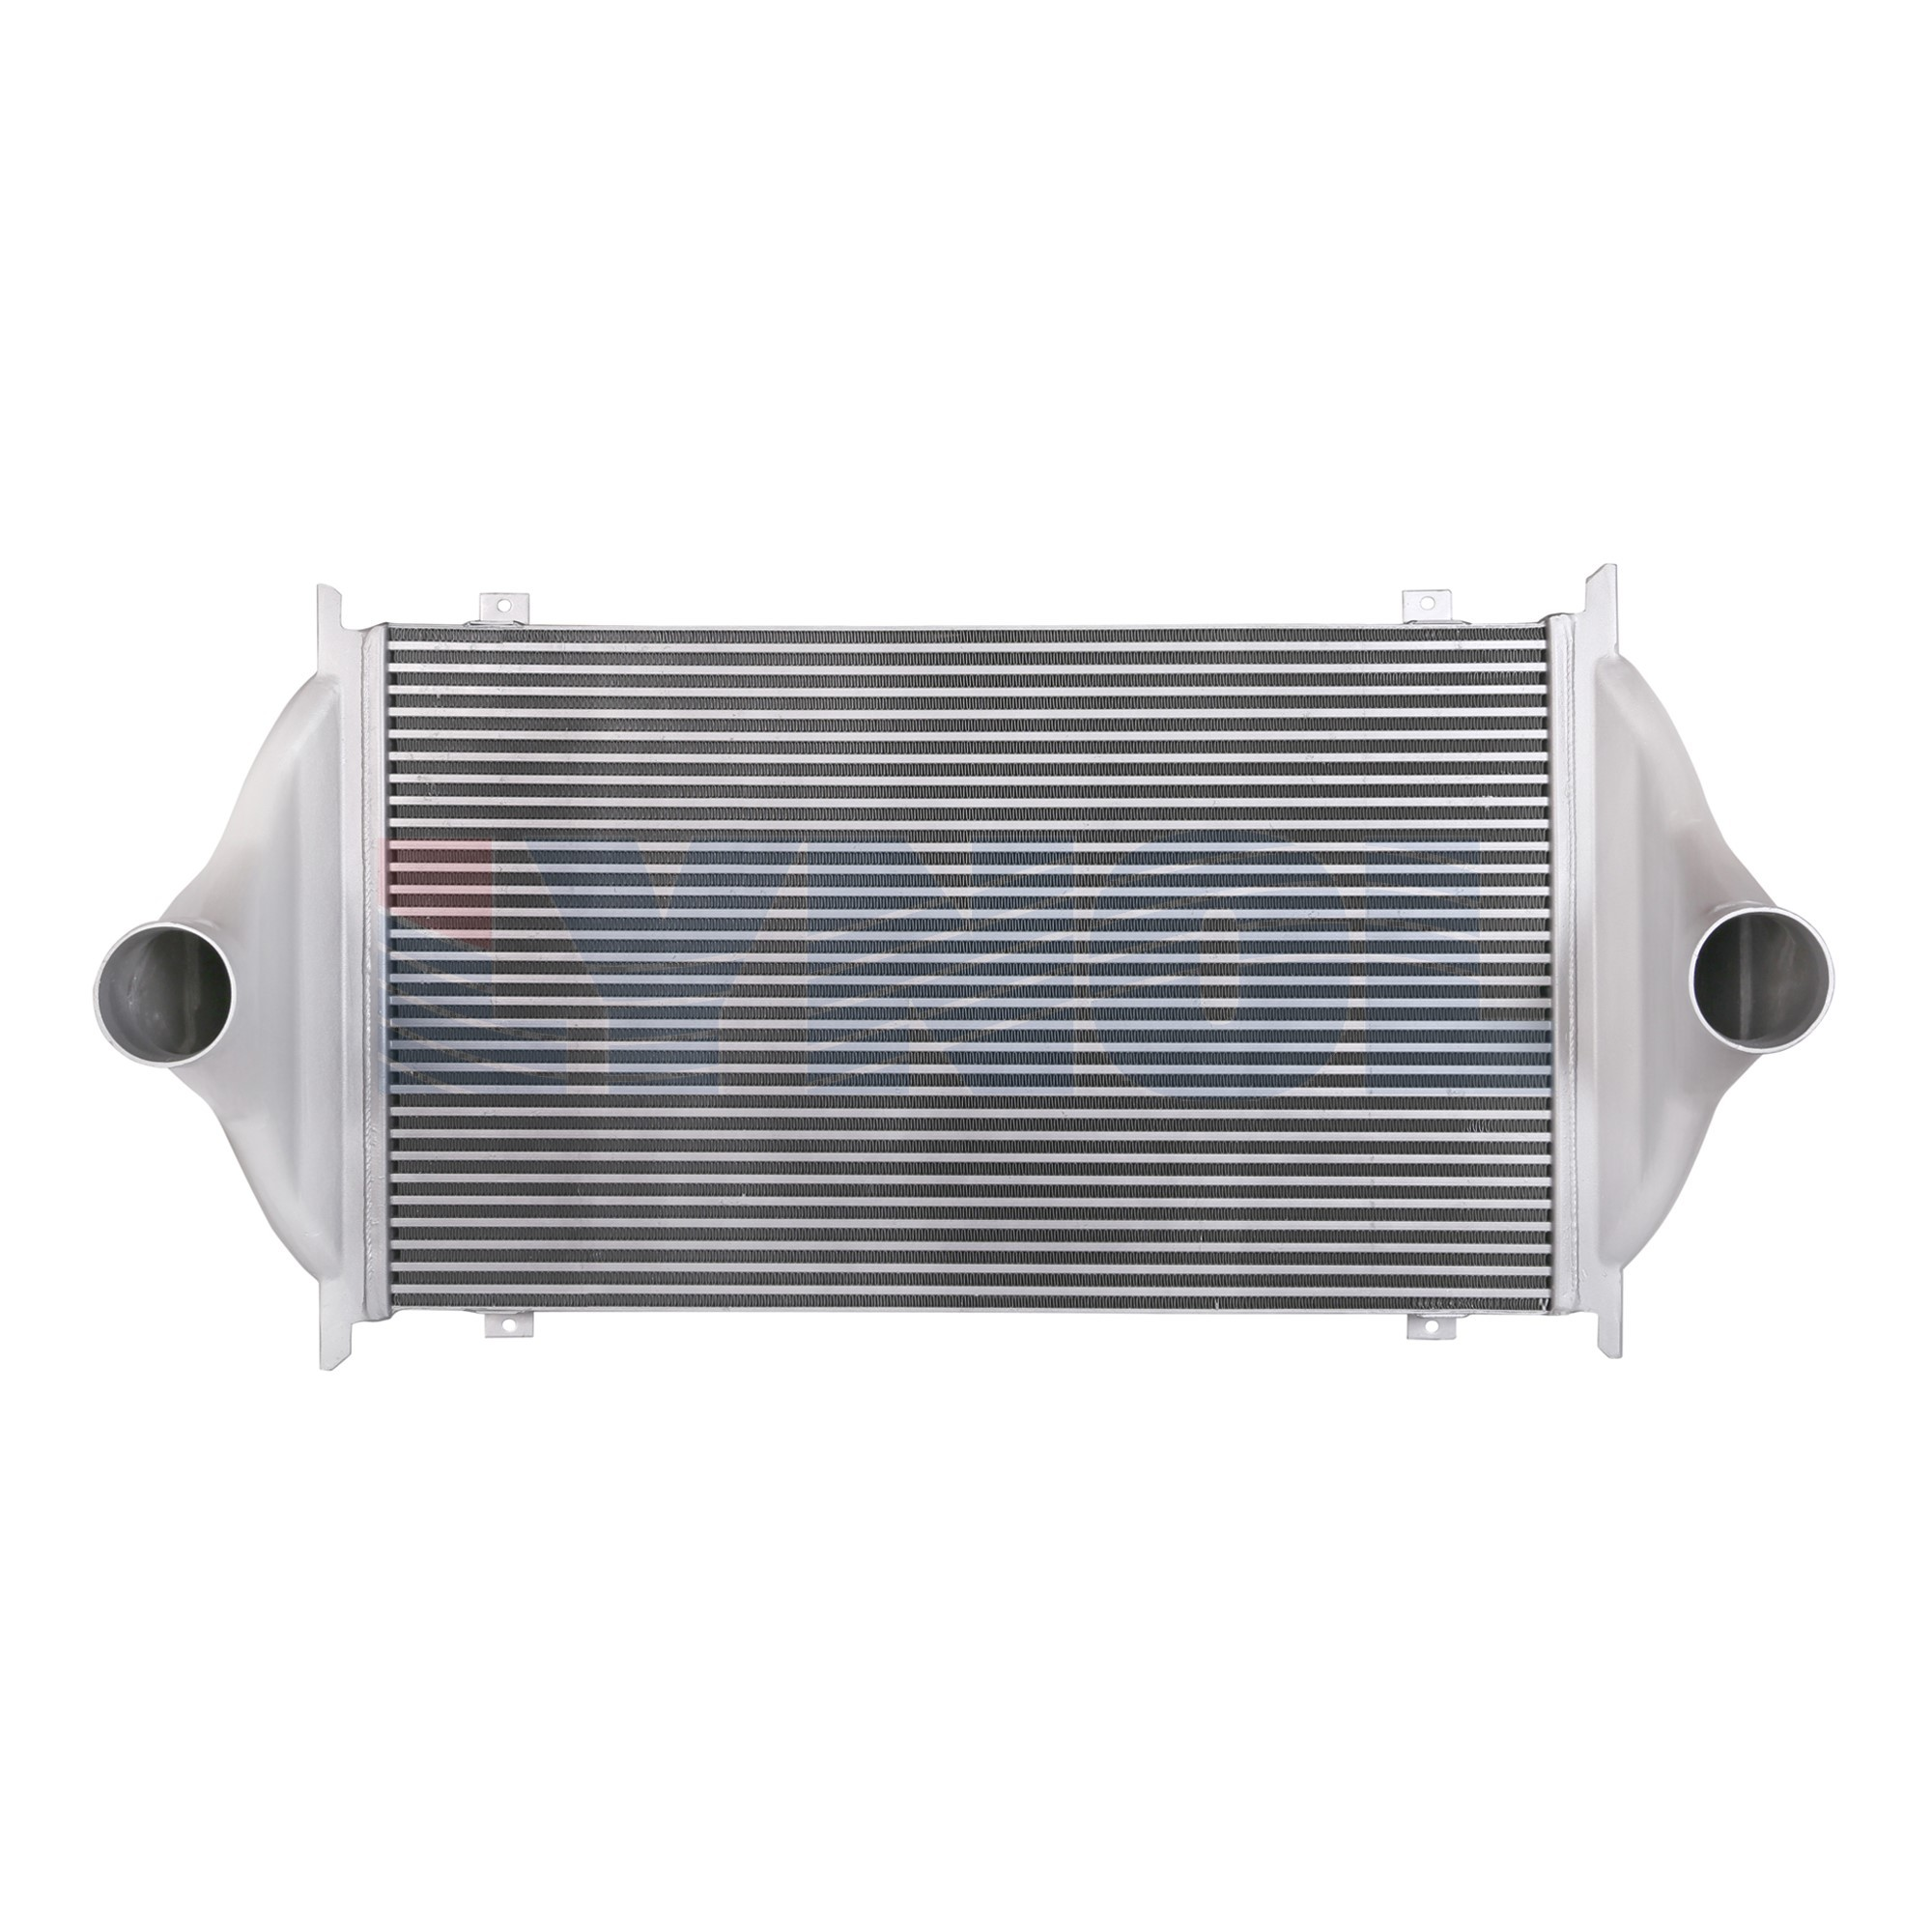 2400-009 - Freightliner Charge Air Cooler